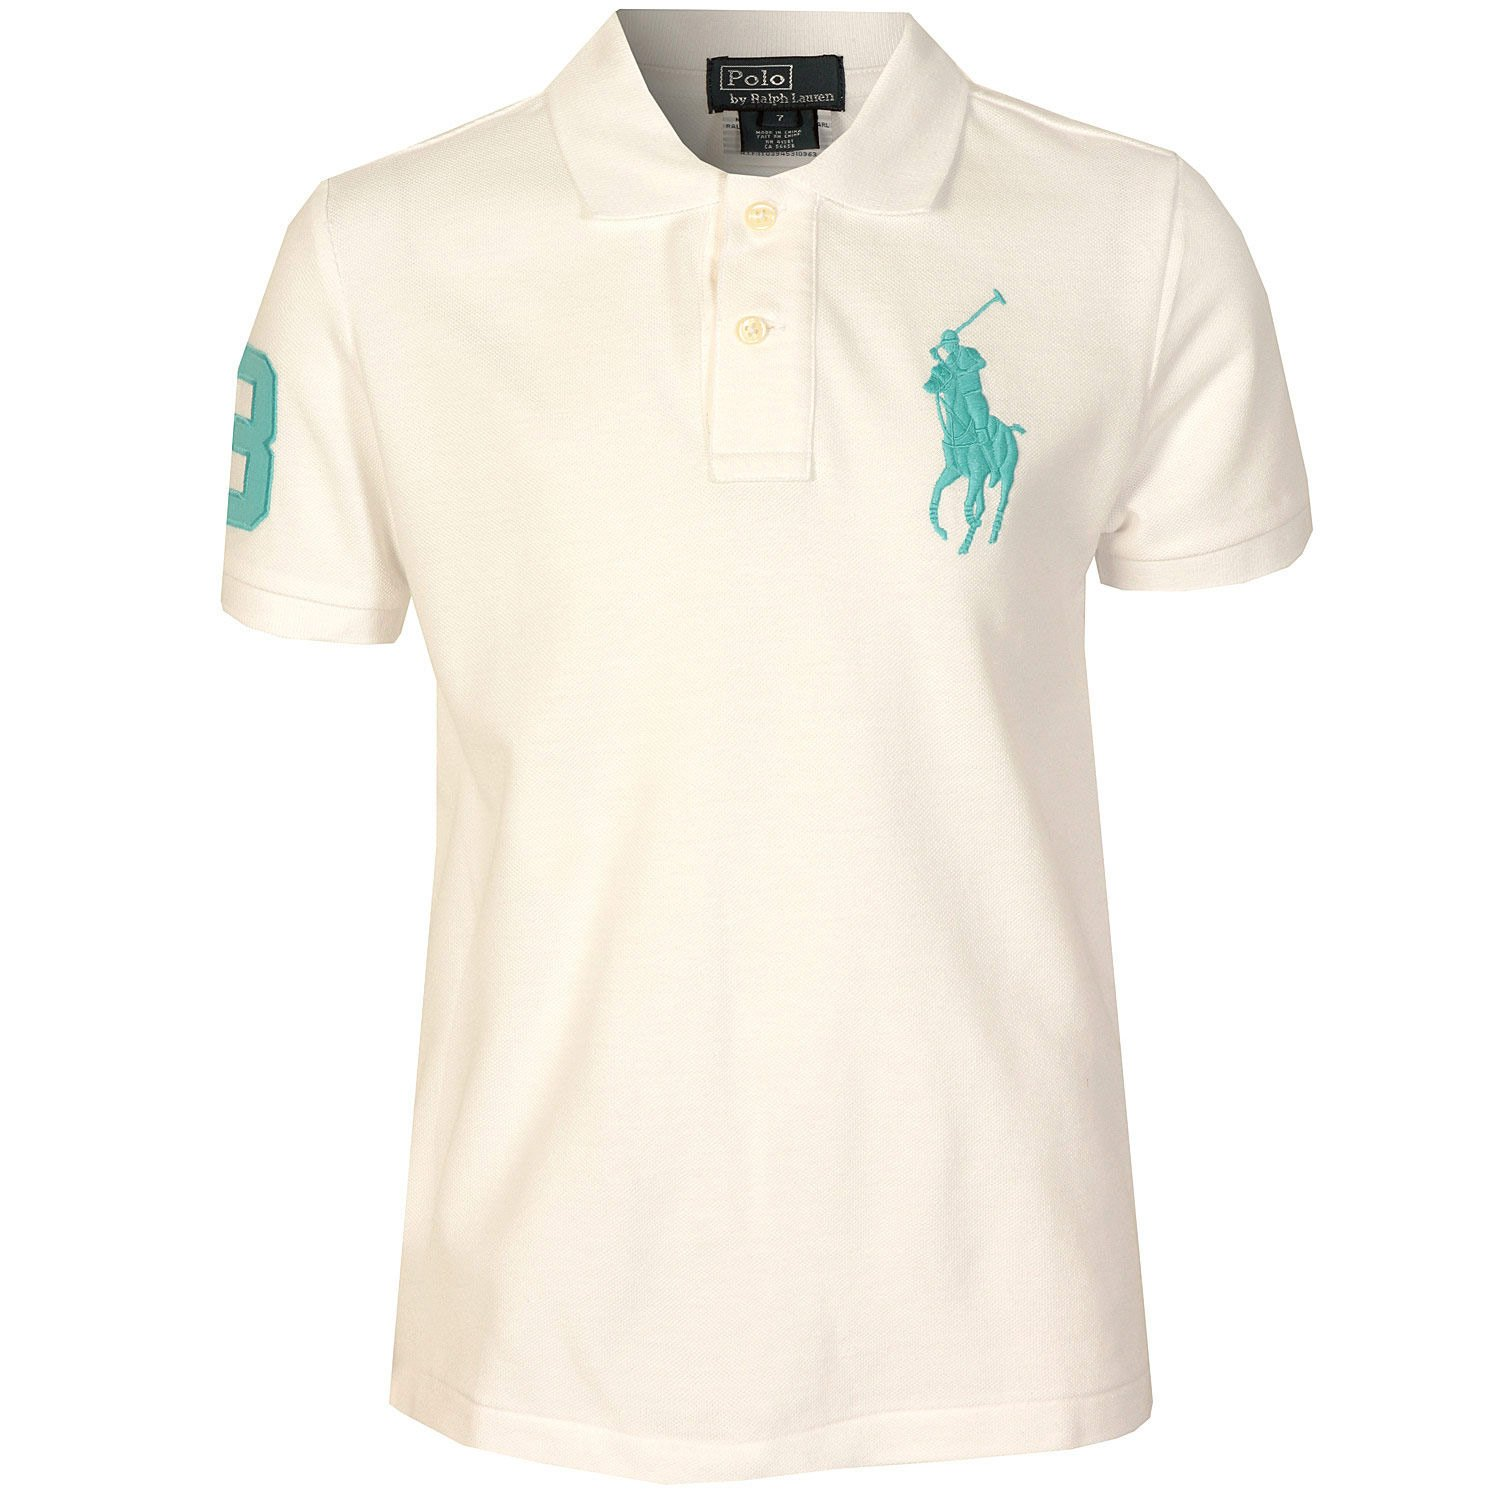 Polo Ralph Lauren Big Pony para niño (blanco): Amazon.es: Ropa y ...